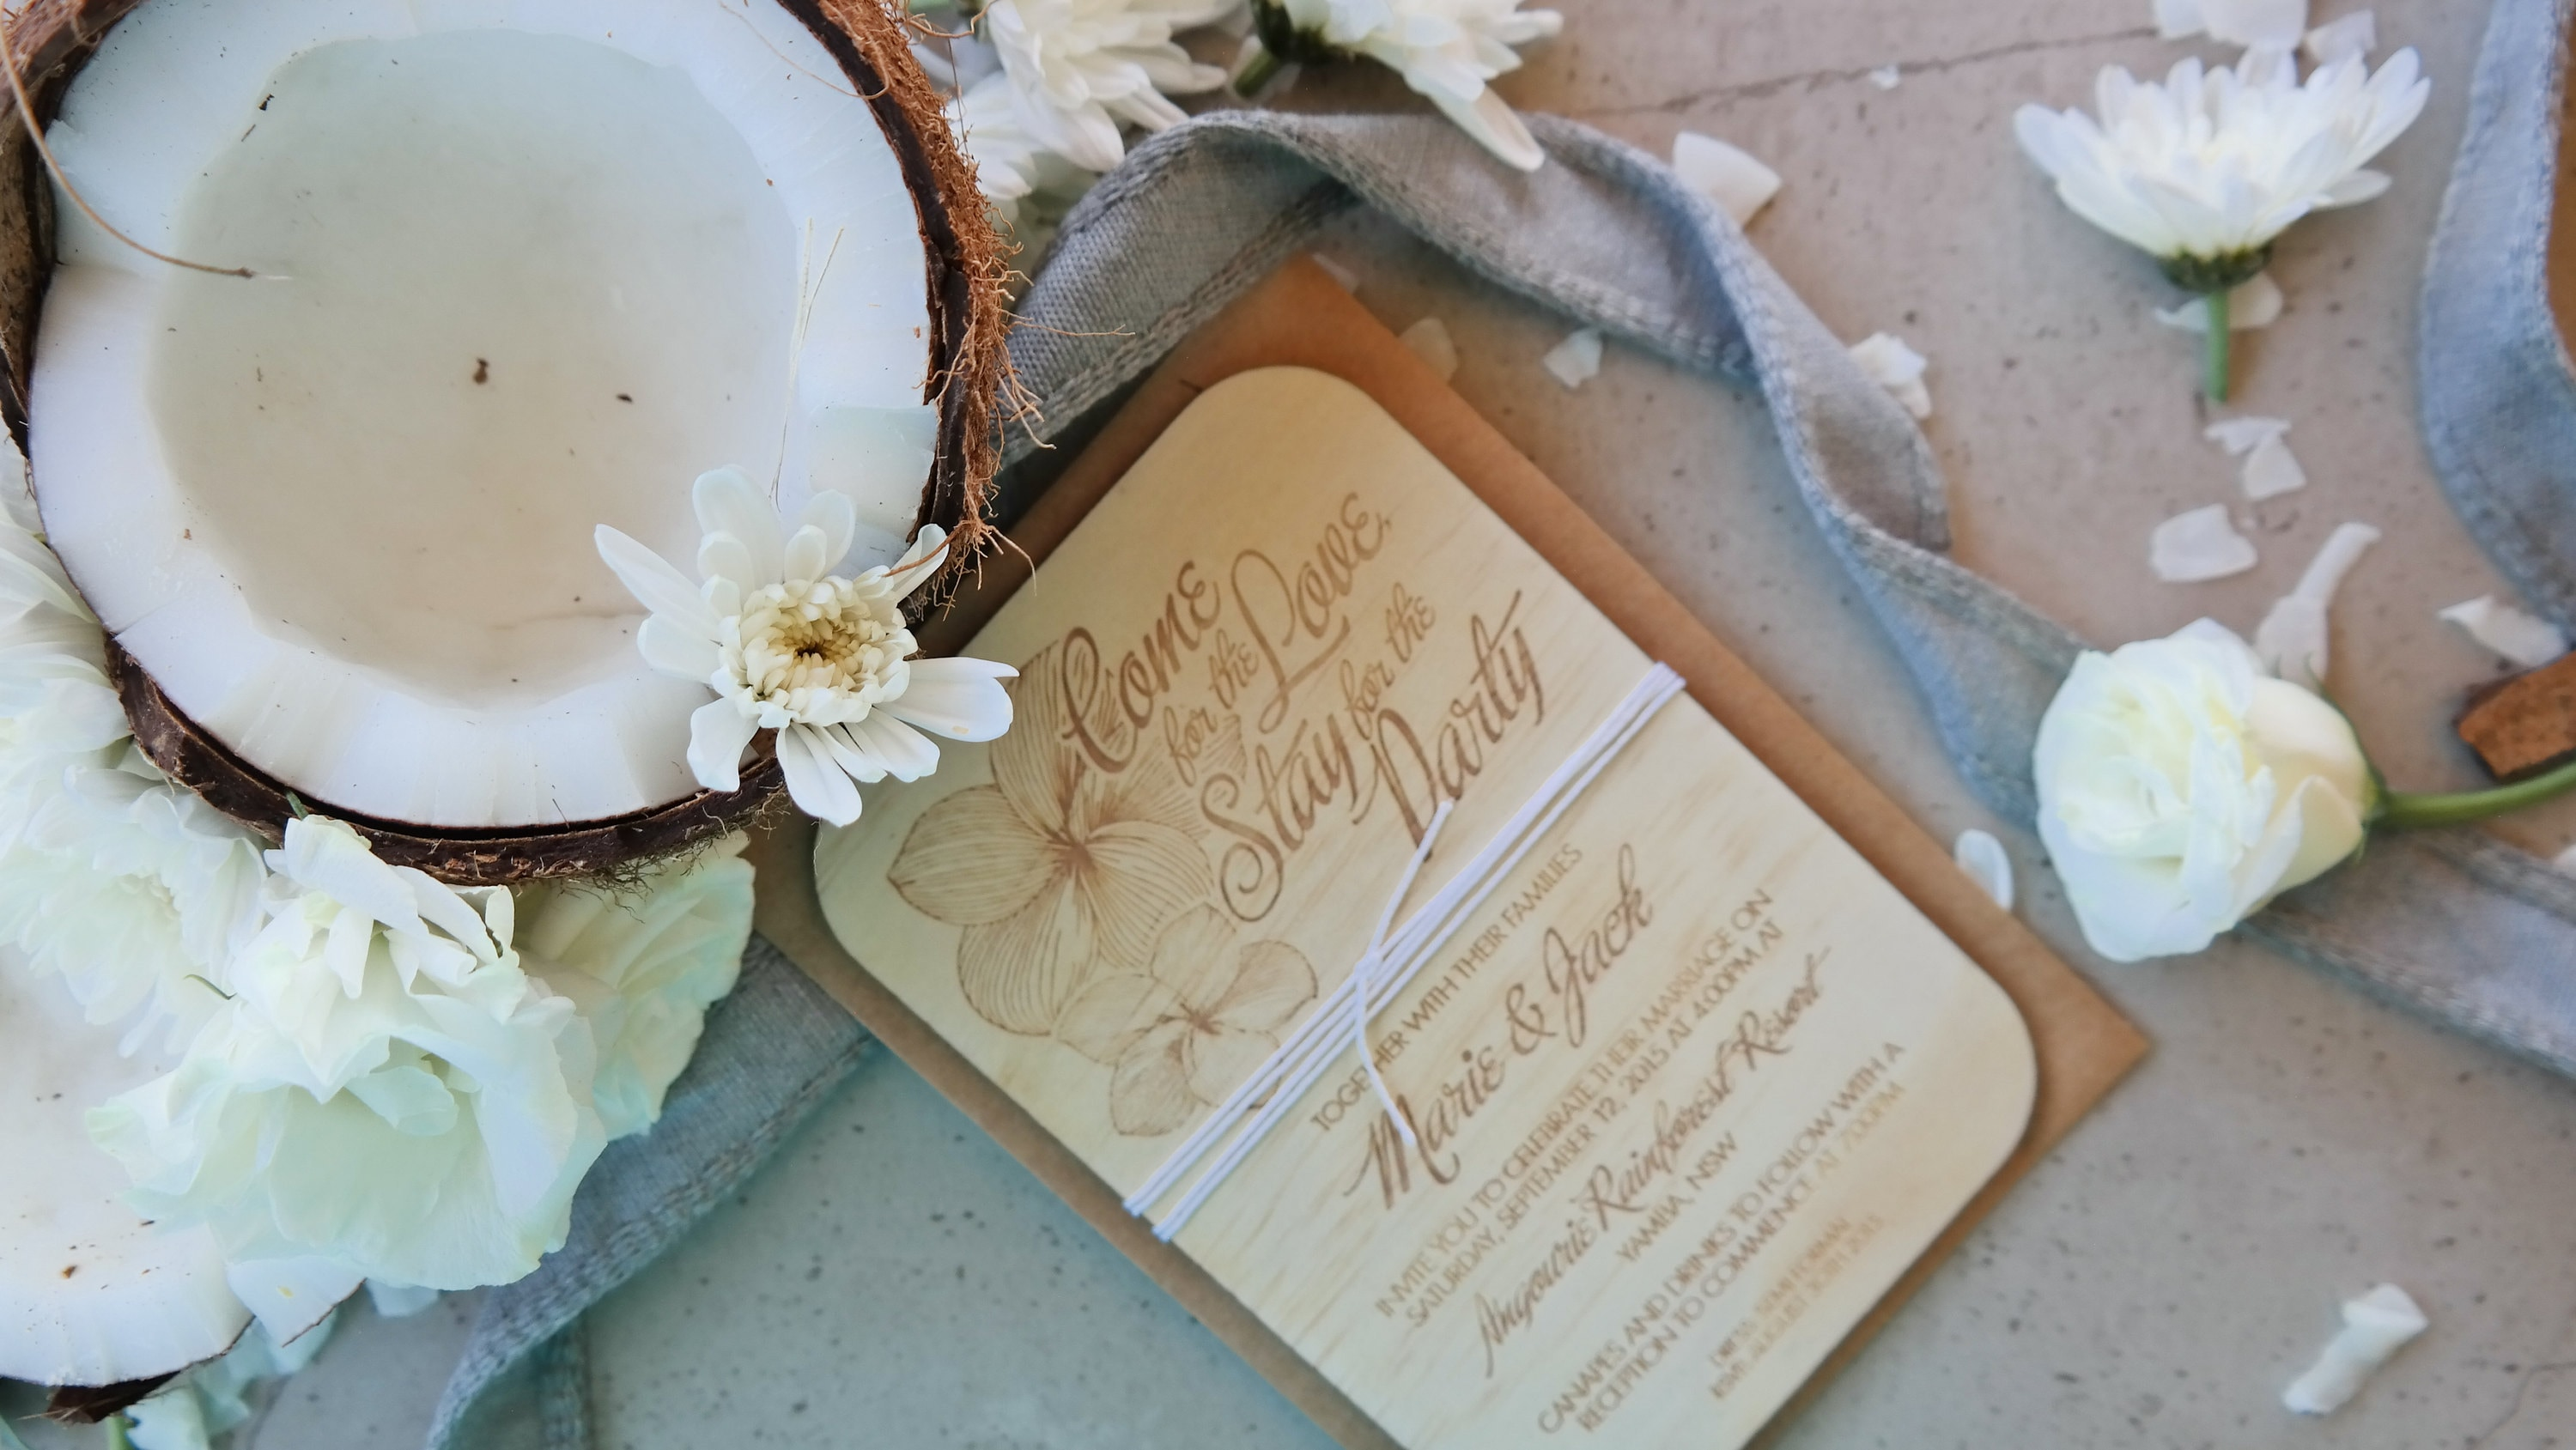 Frangipani coastal wedding invitation